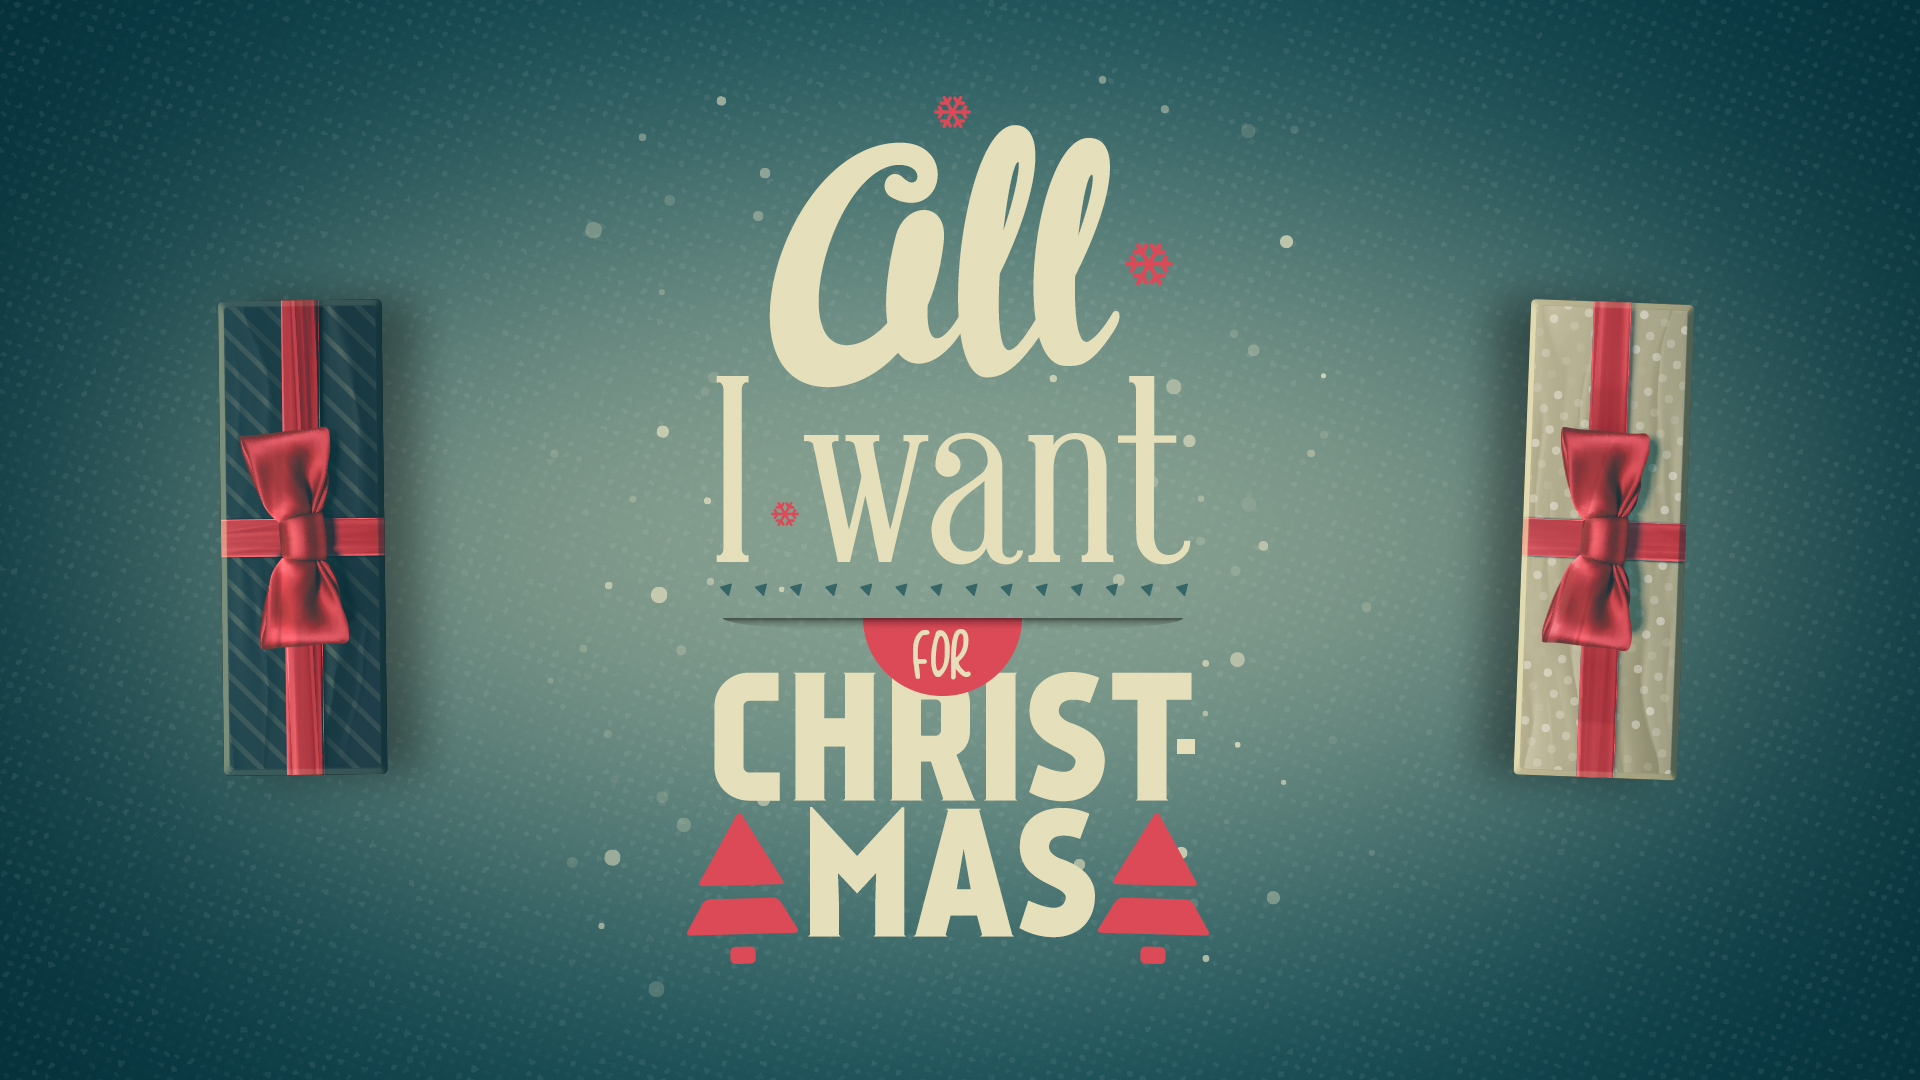 All I Want for Christmas_1920x1080.jpg